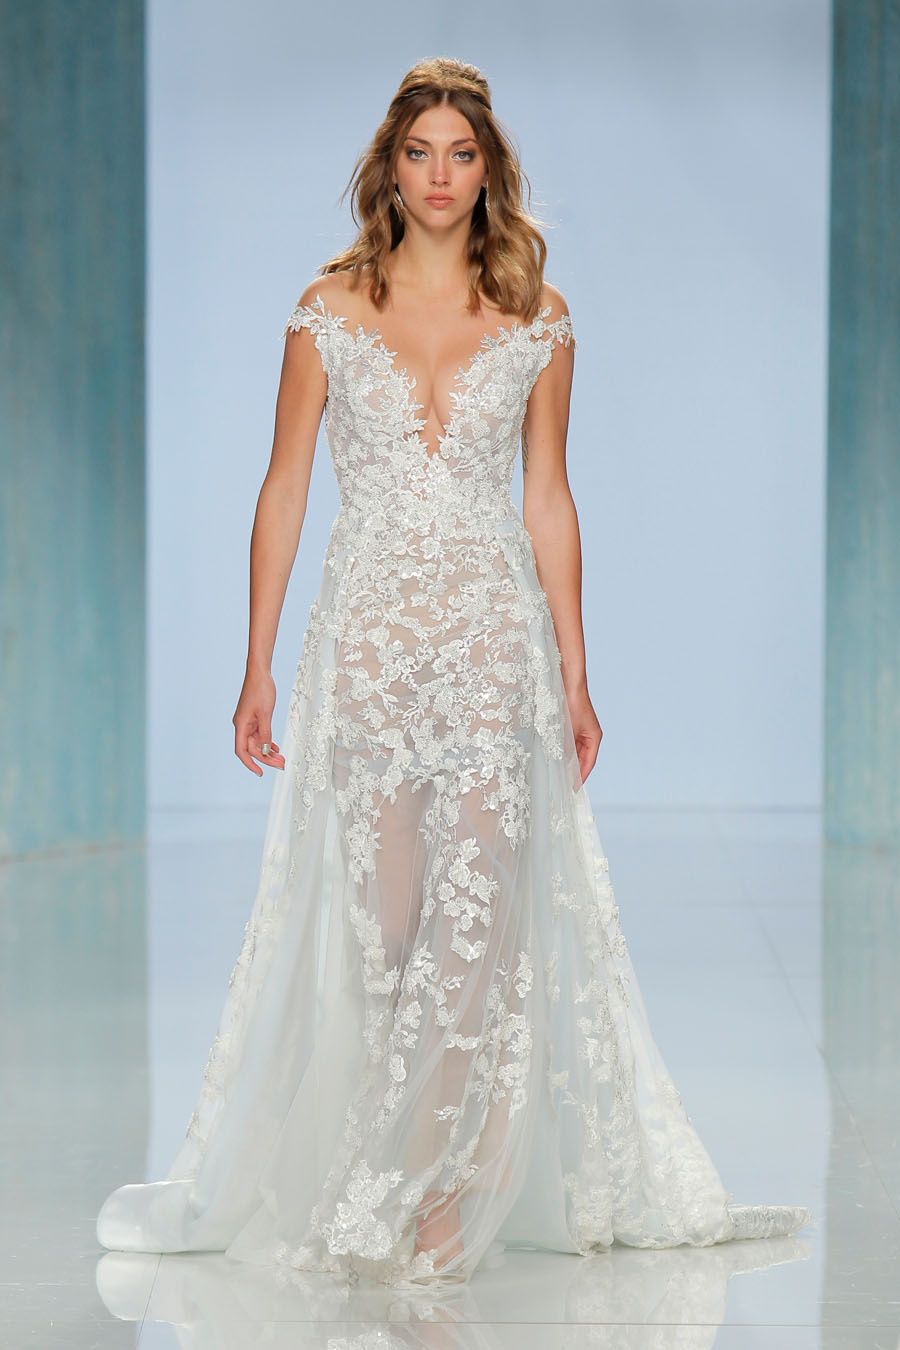 GALA Bridal Gown Collection - 901